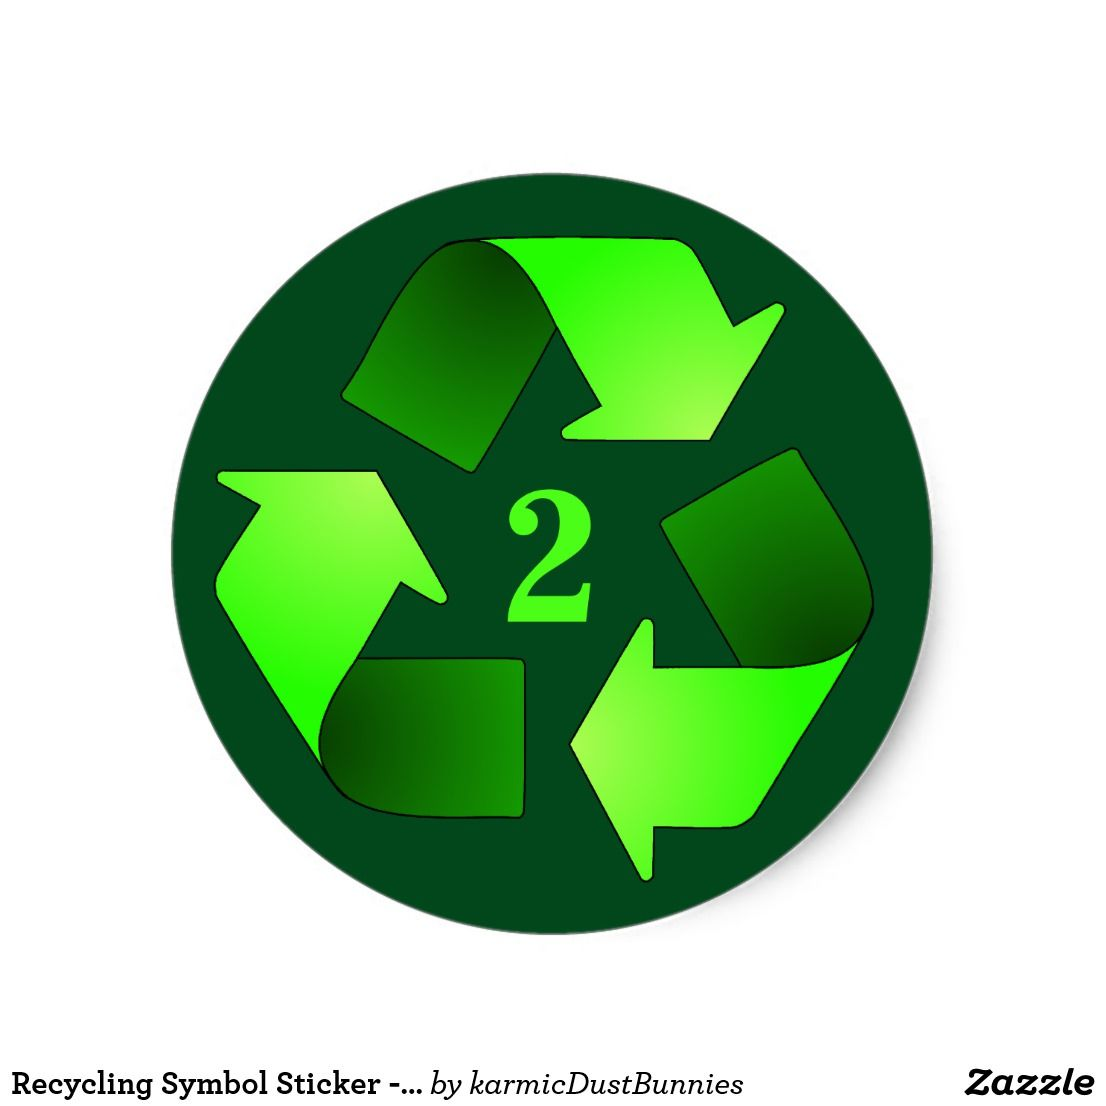 Recycling Symbol Sticker Choose Recycling Number Pinterest